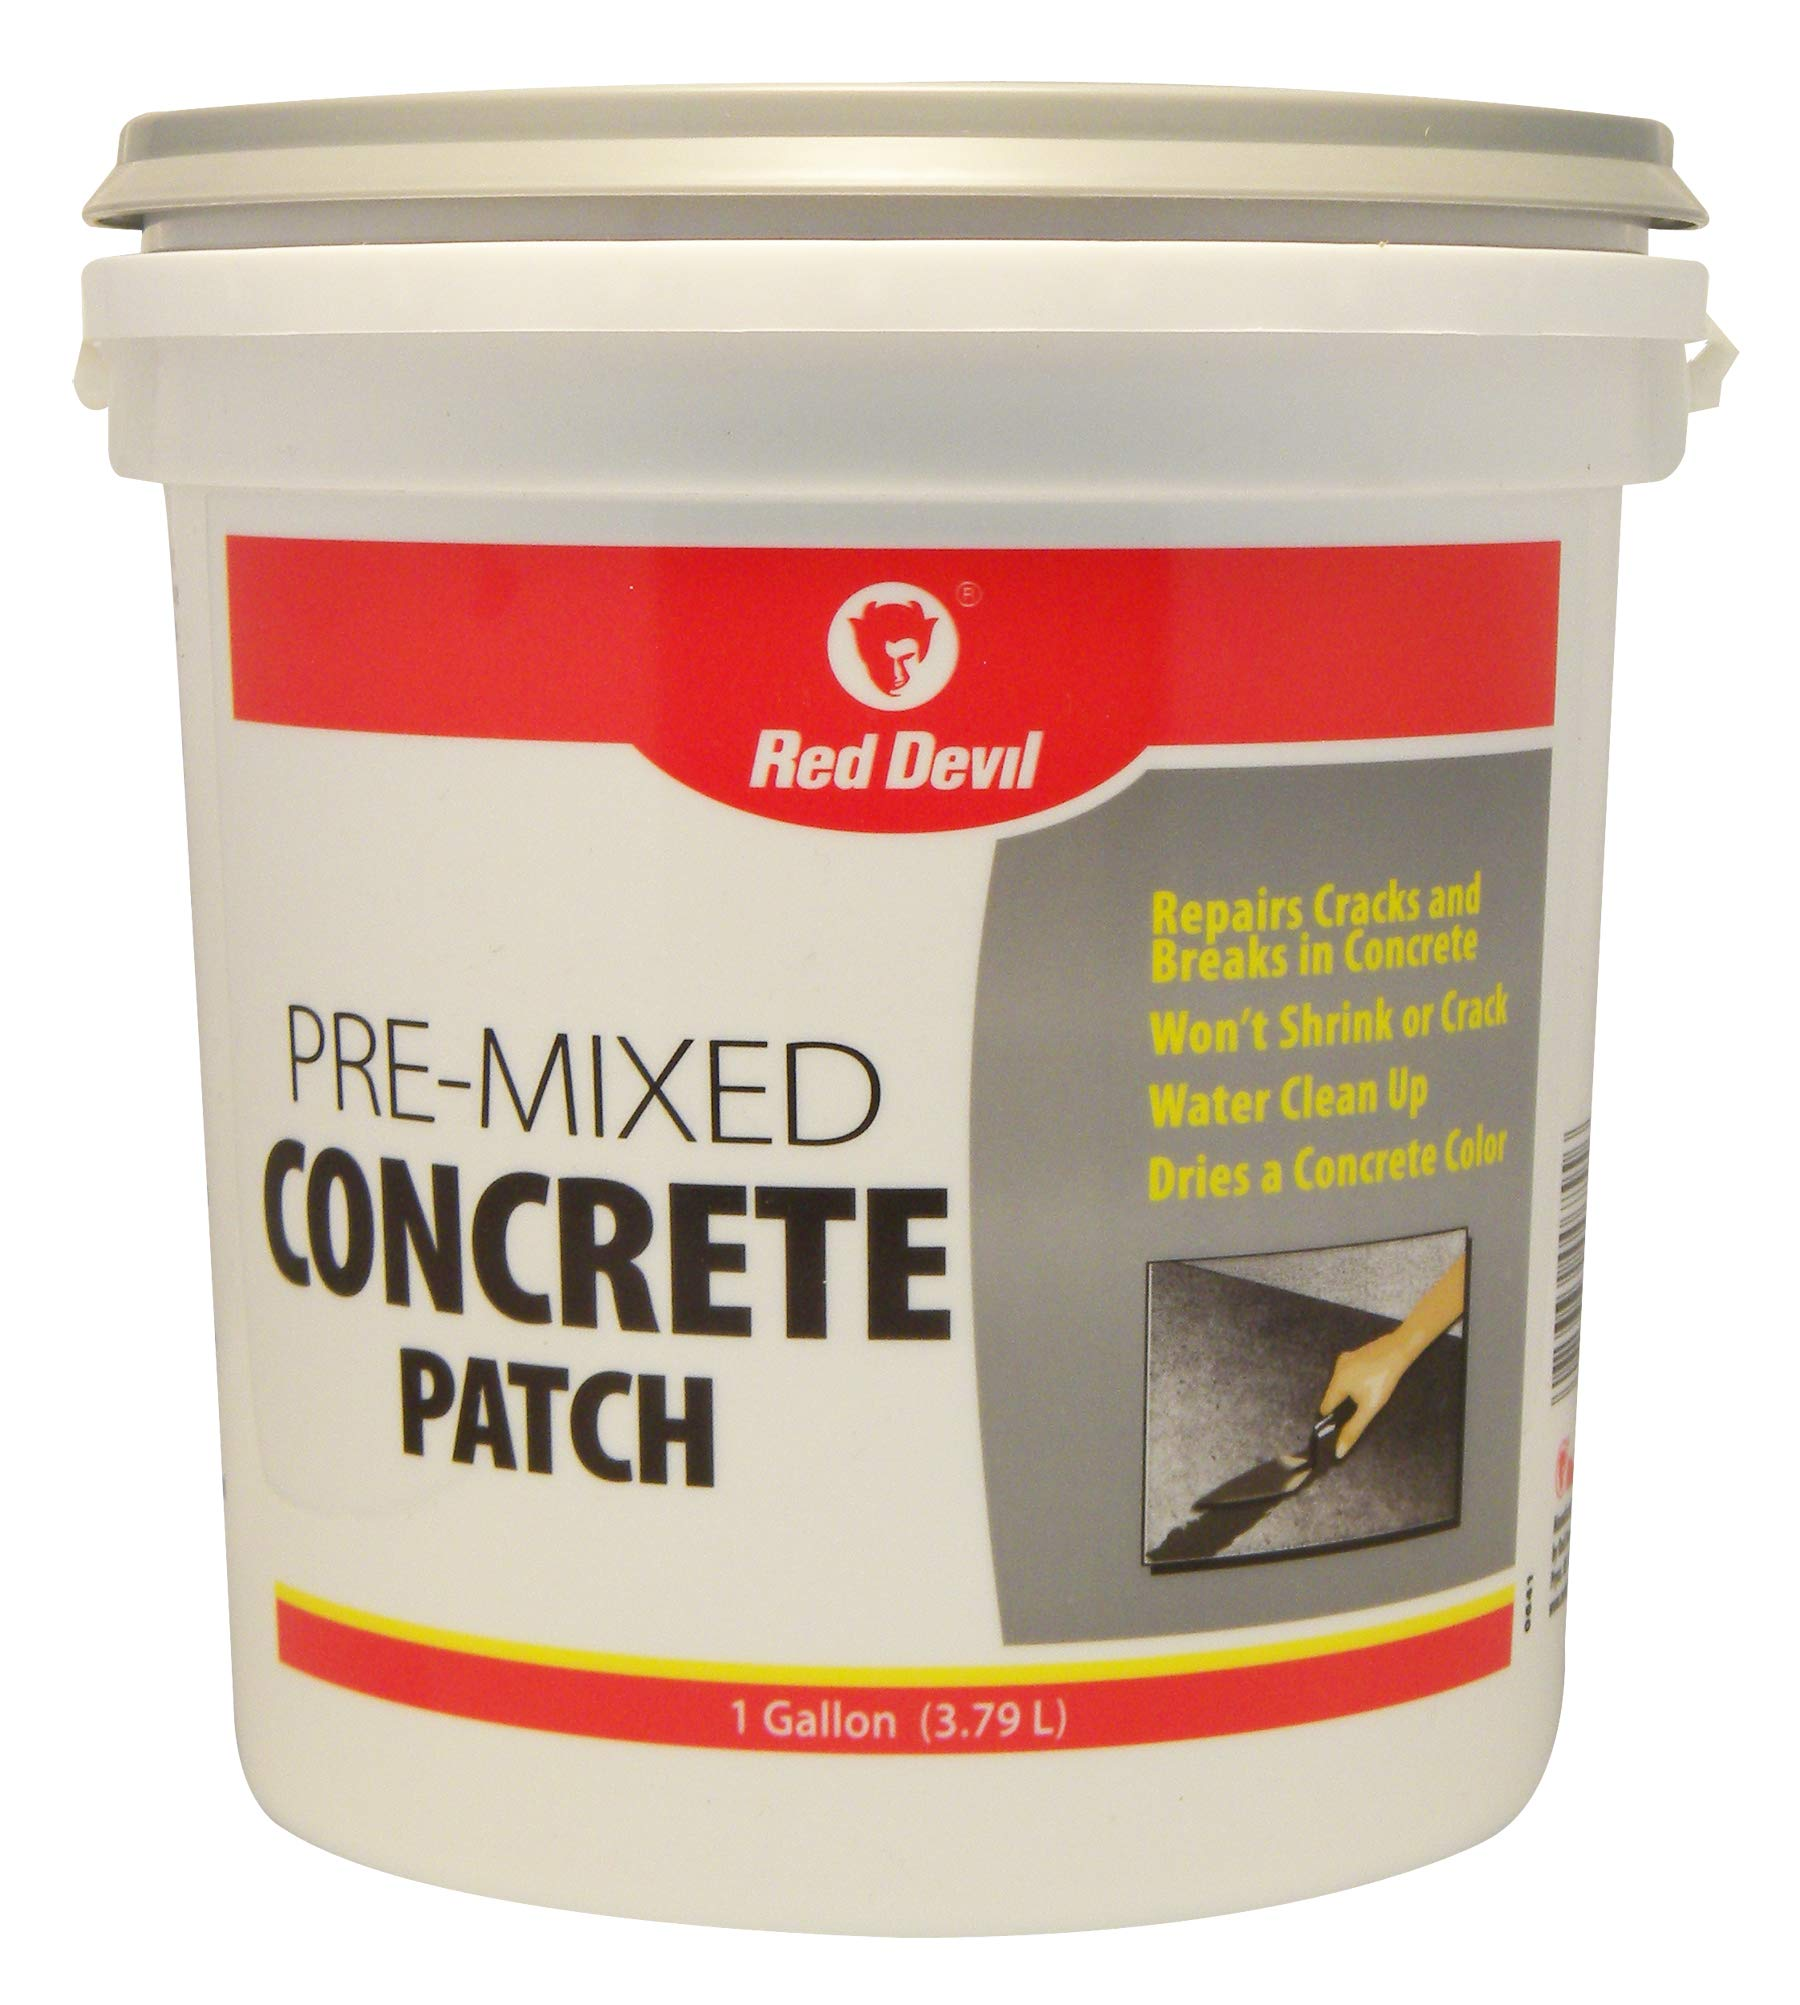 Red Devil 0641 Pre-Mixed Concrete Patch, 1 Gallon, Pack of 2, Gray